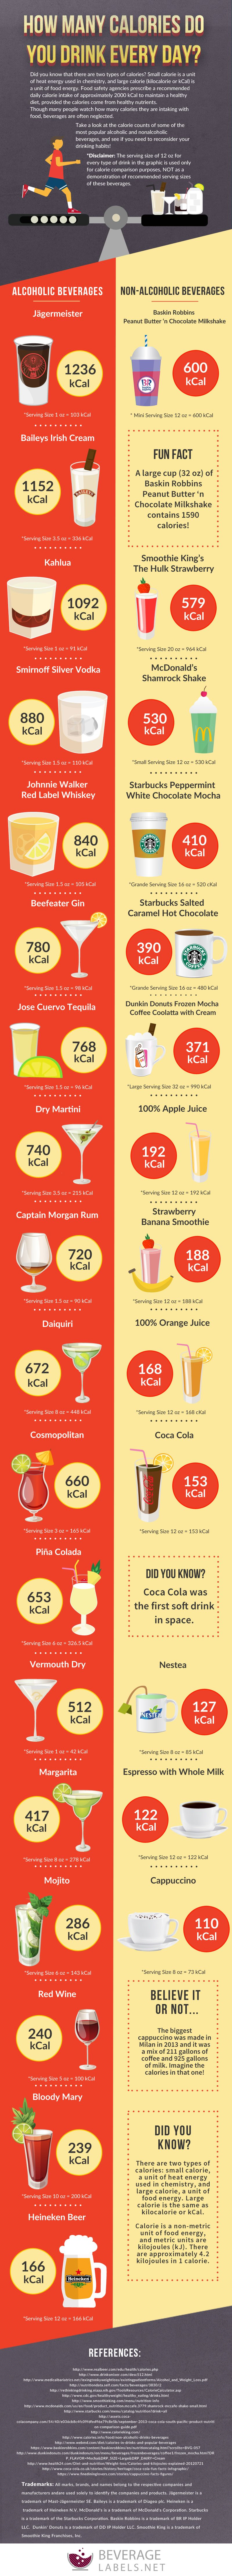 How Many Calories Do You Drink Every Day Infographic Health Food Infographic Health Drinking Every Day Food Infographic